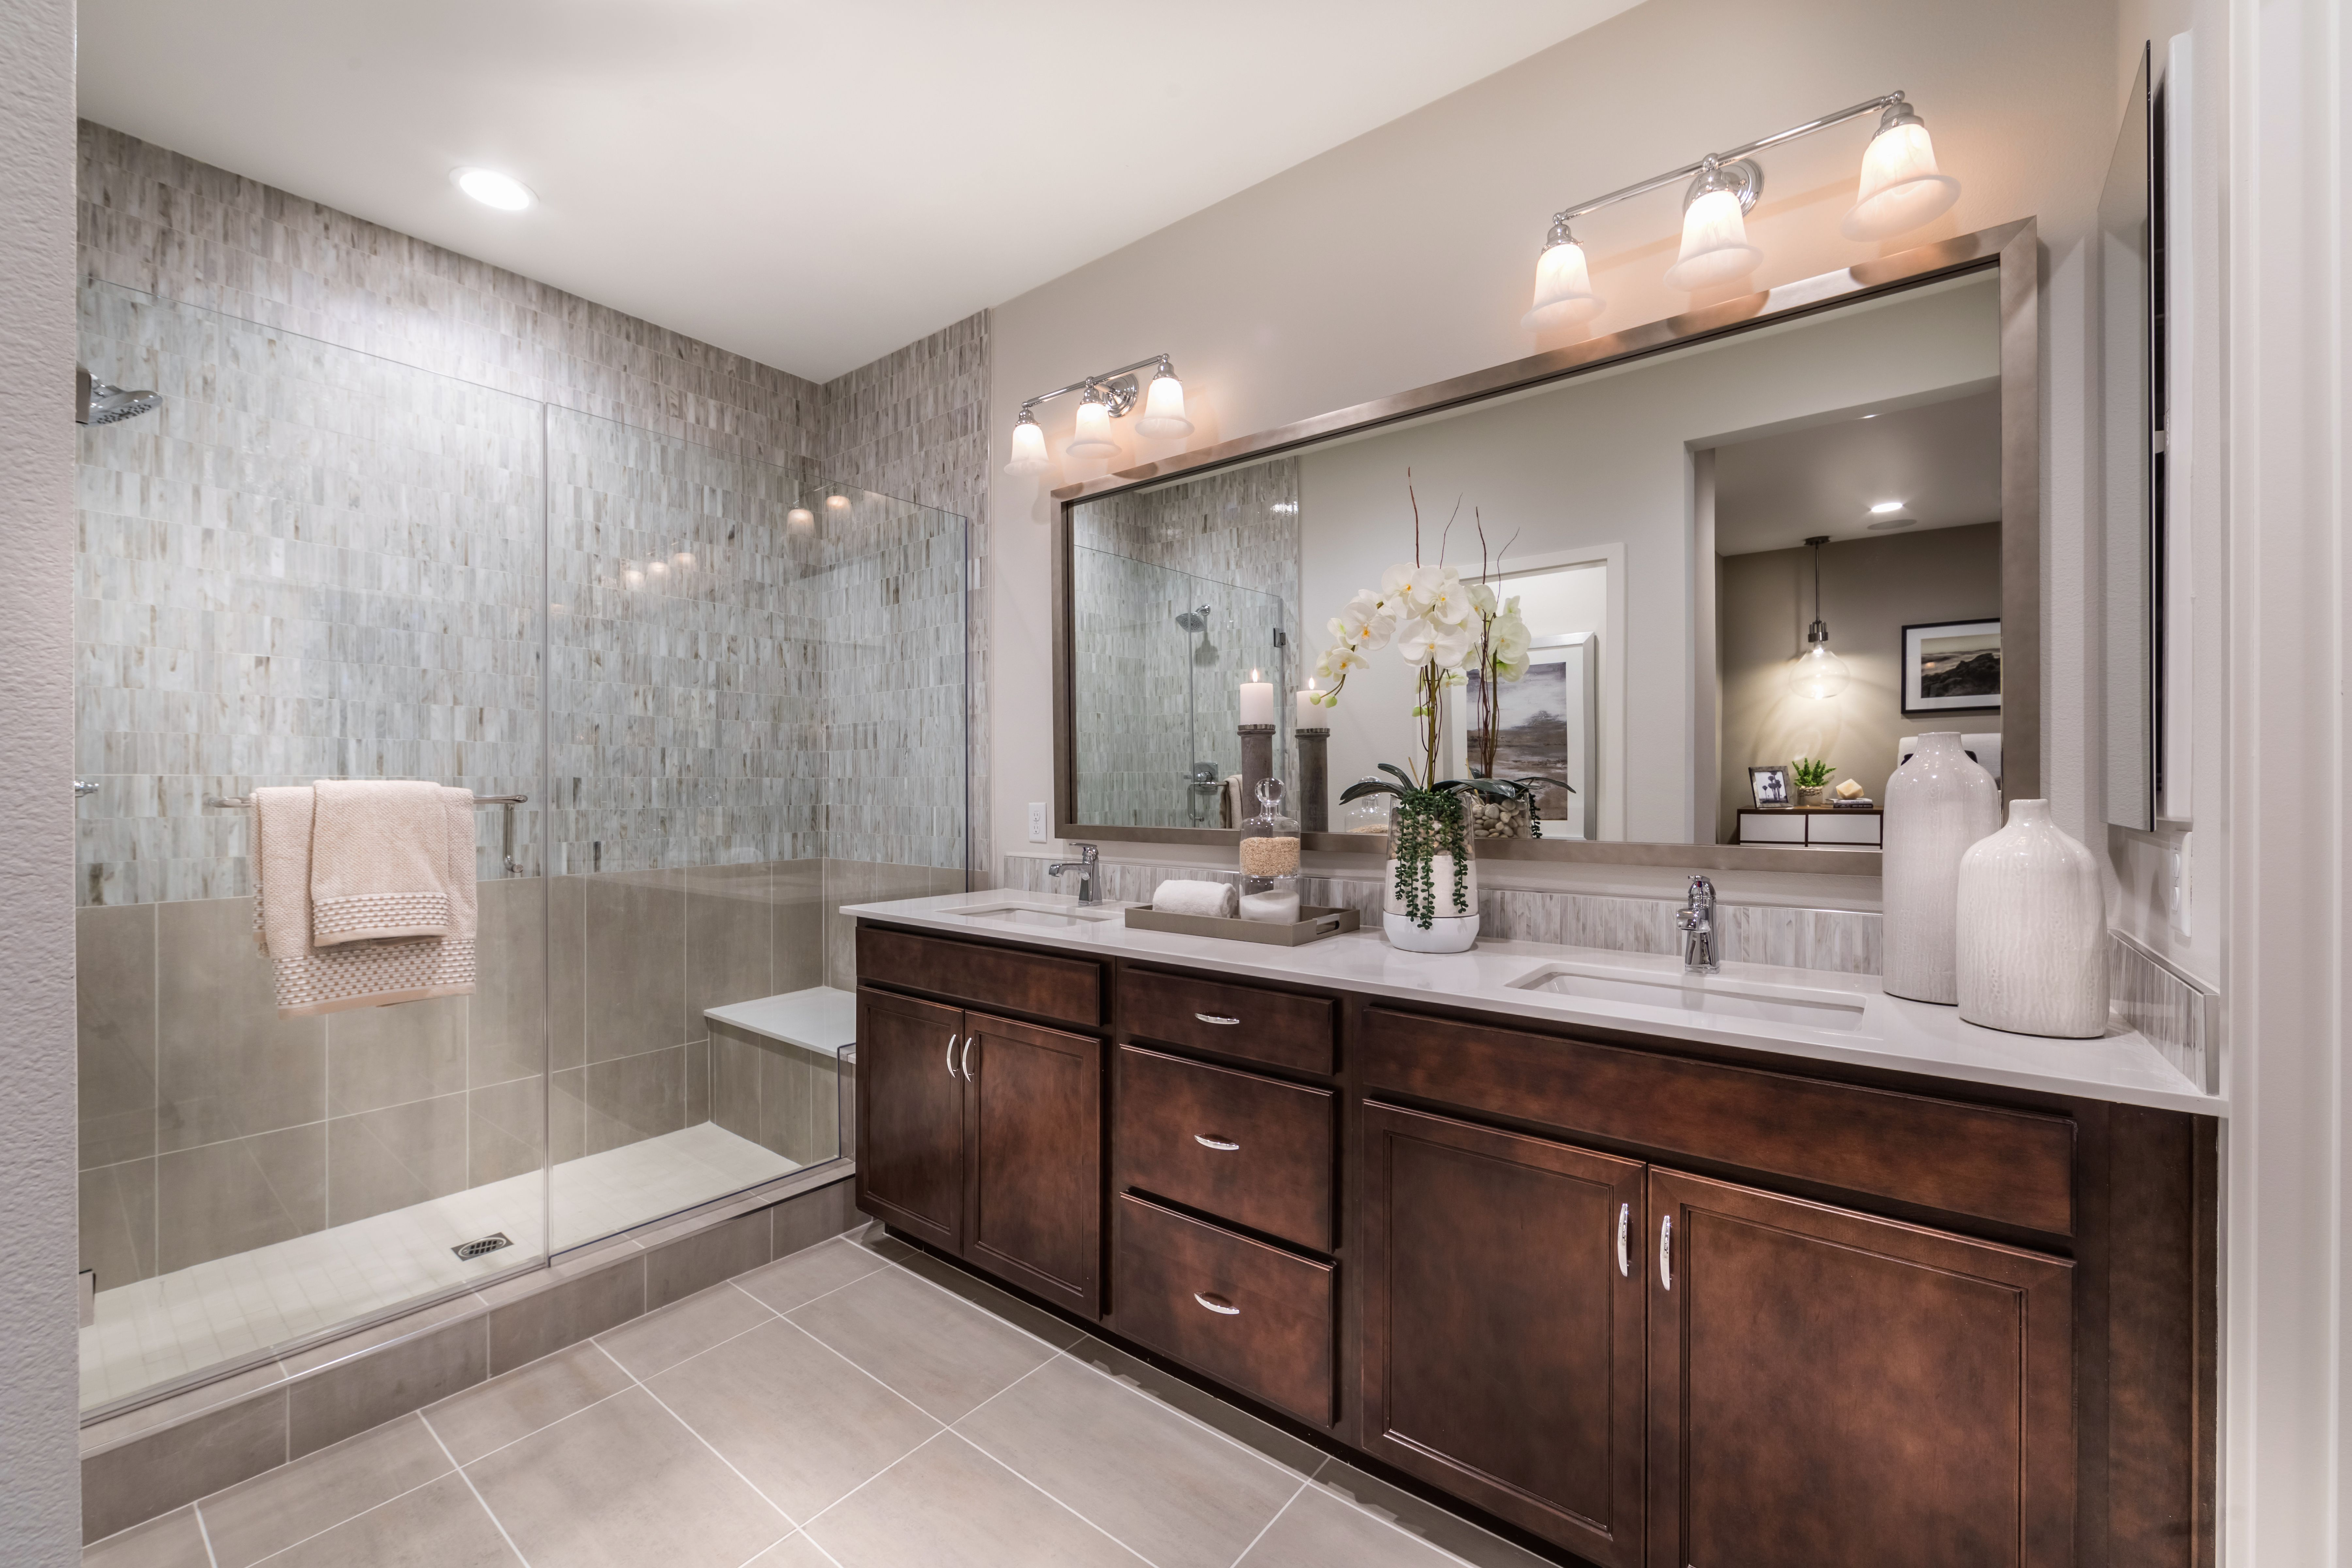 Bathroom featured in the Plan One By Landsea Homes in Ventura, CA